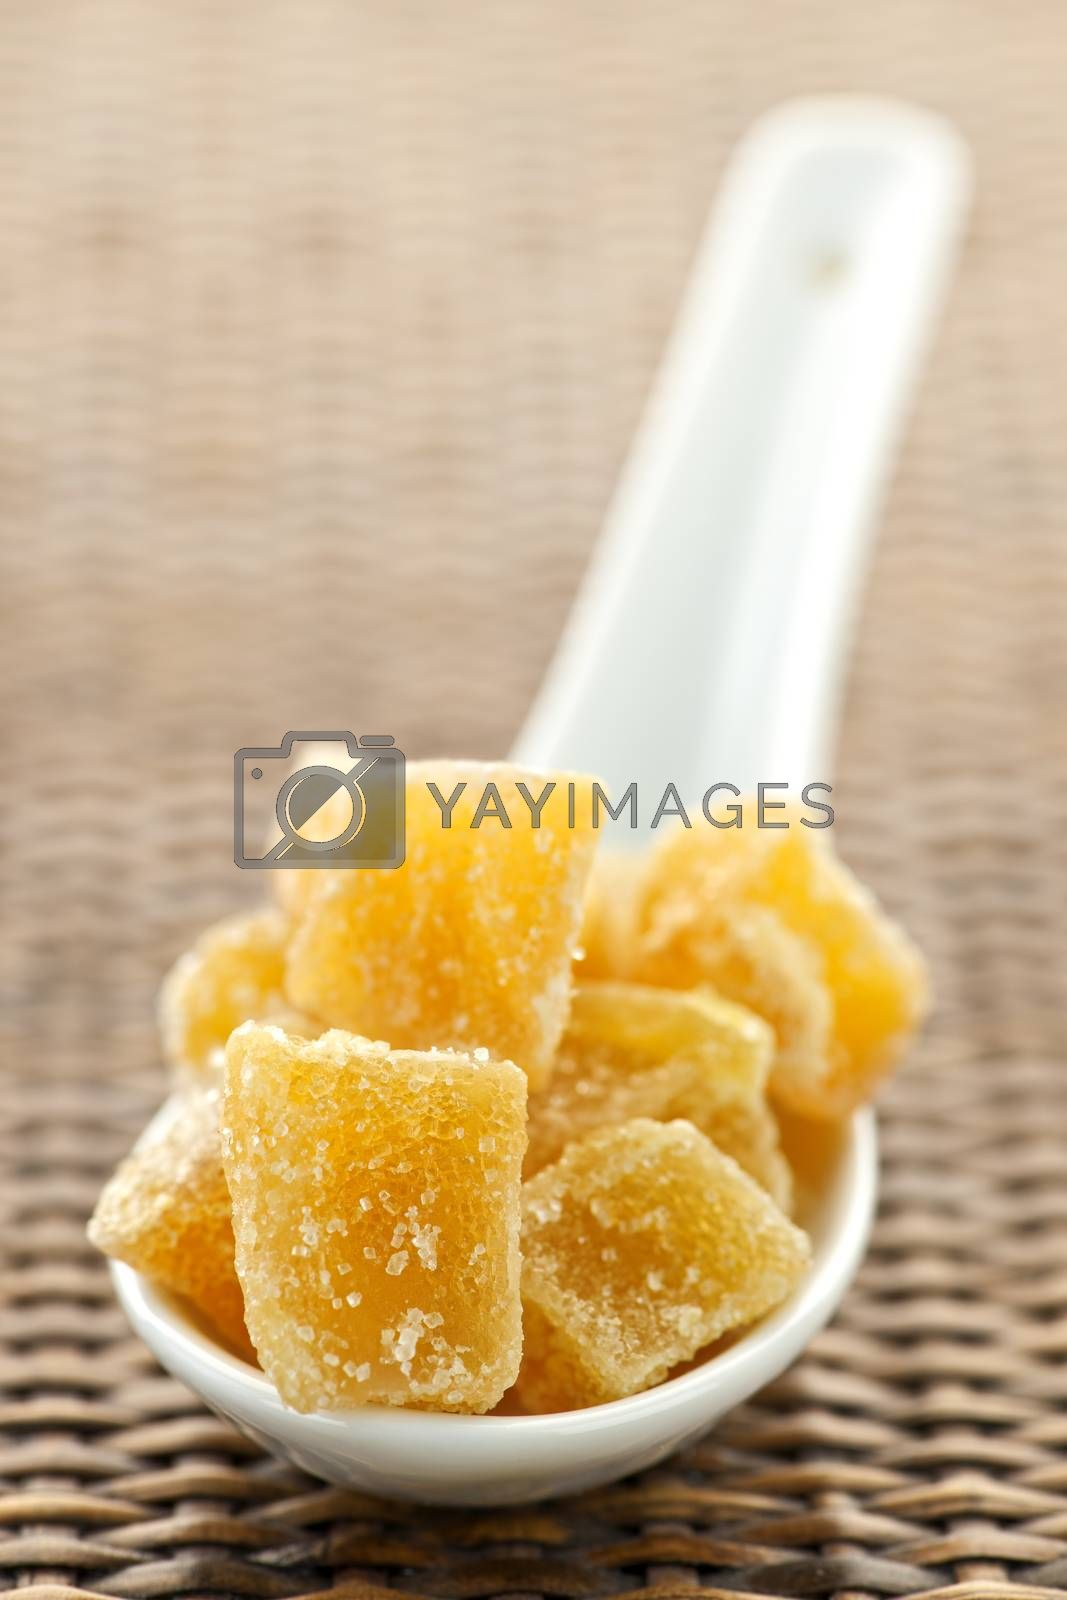 Caramelized ginger candy pieces on white spoon close up